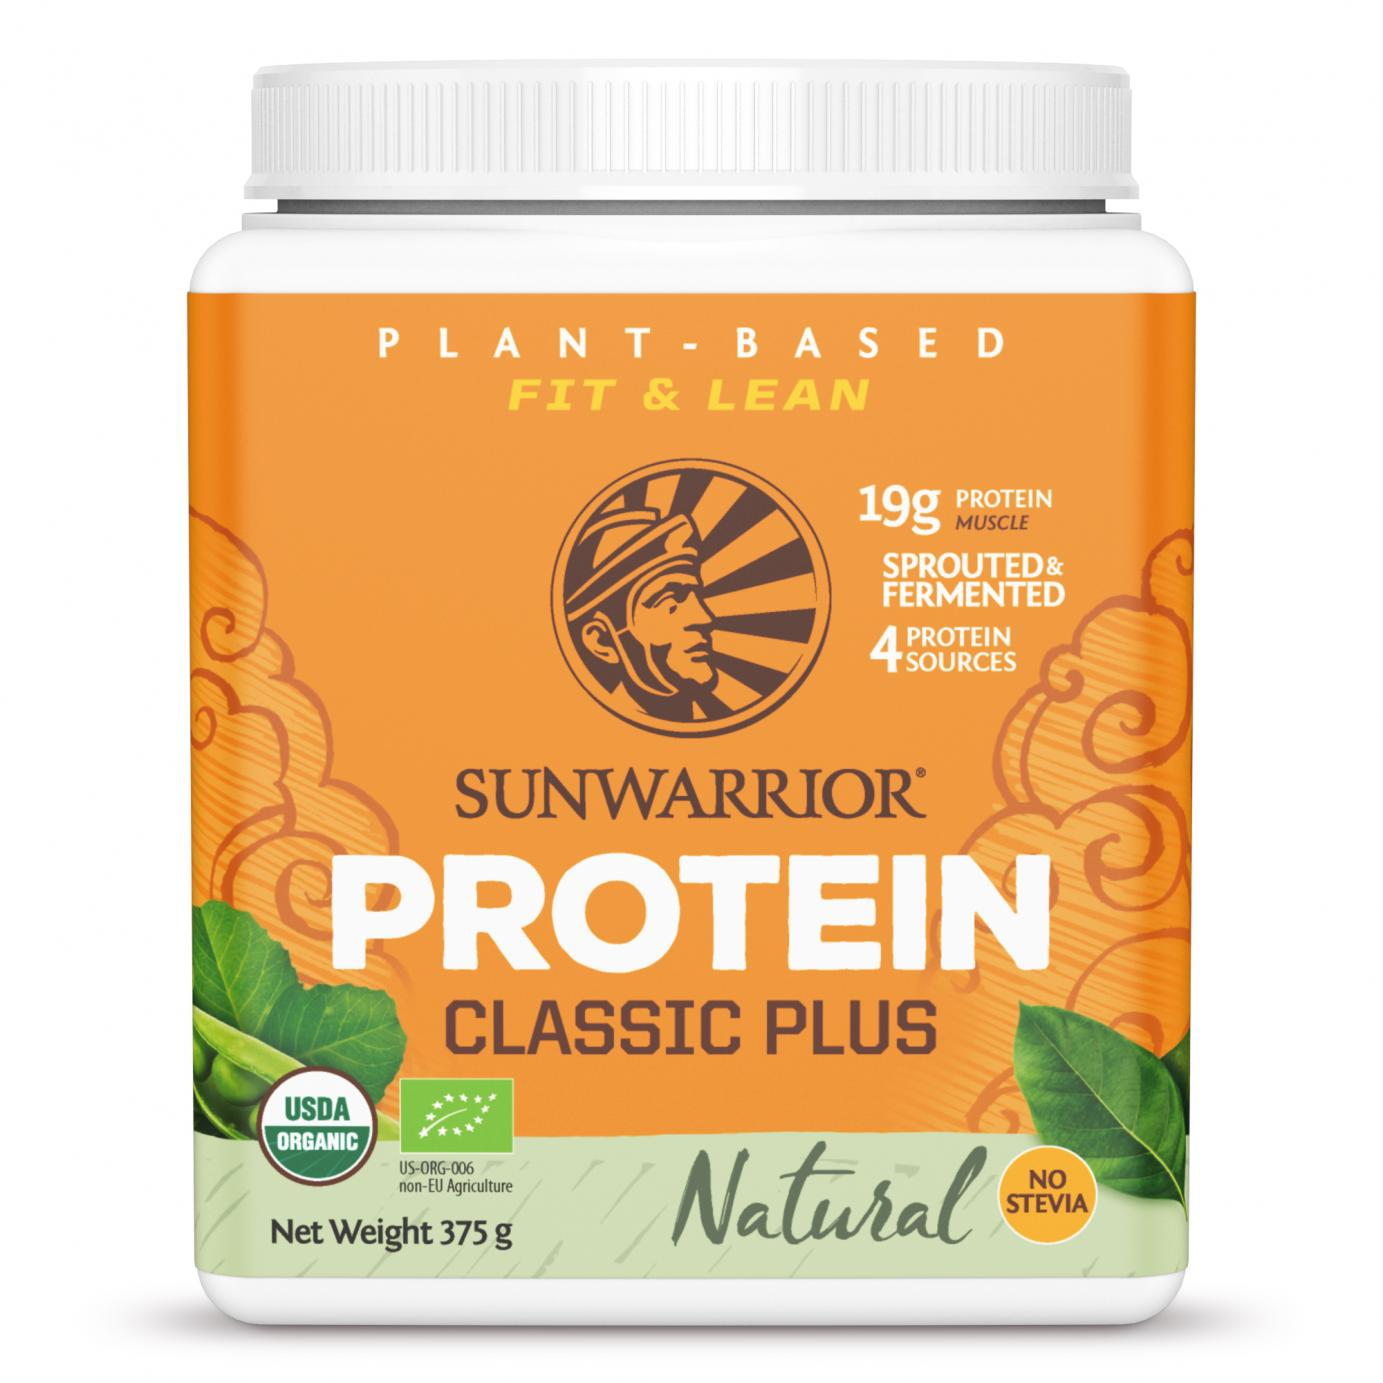 Protein Classic Plus Natural 375g (Orange Tub) (Currently Unavailable)